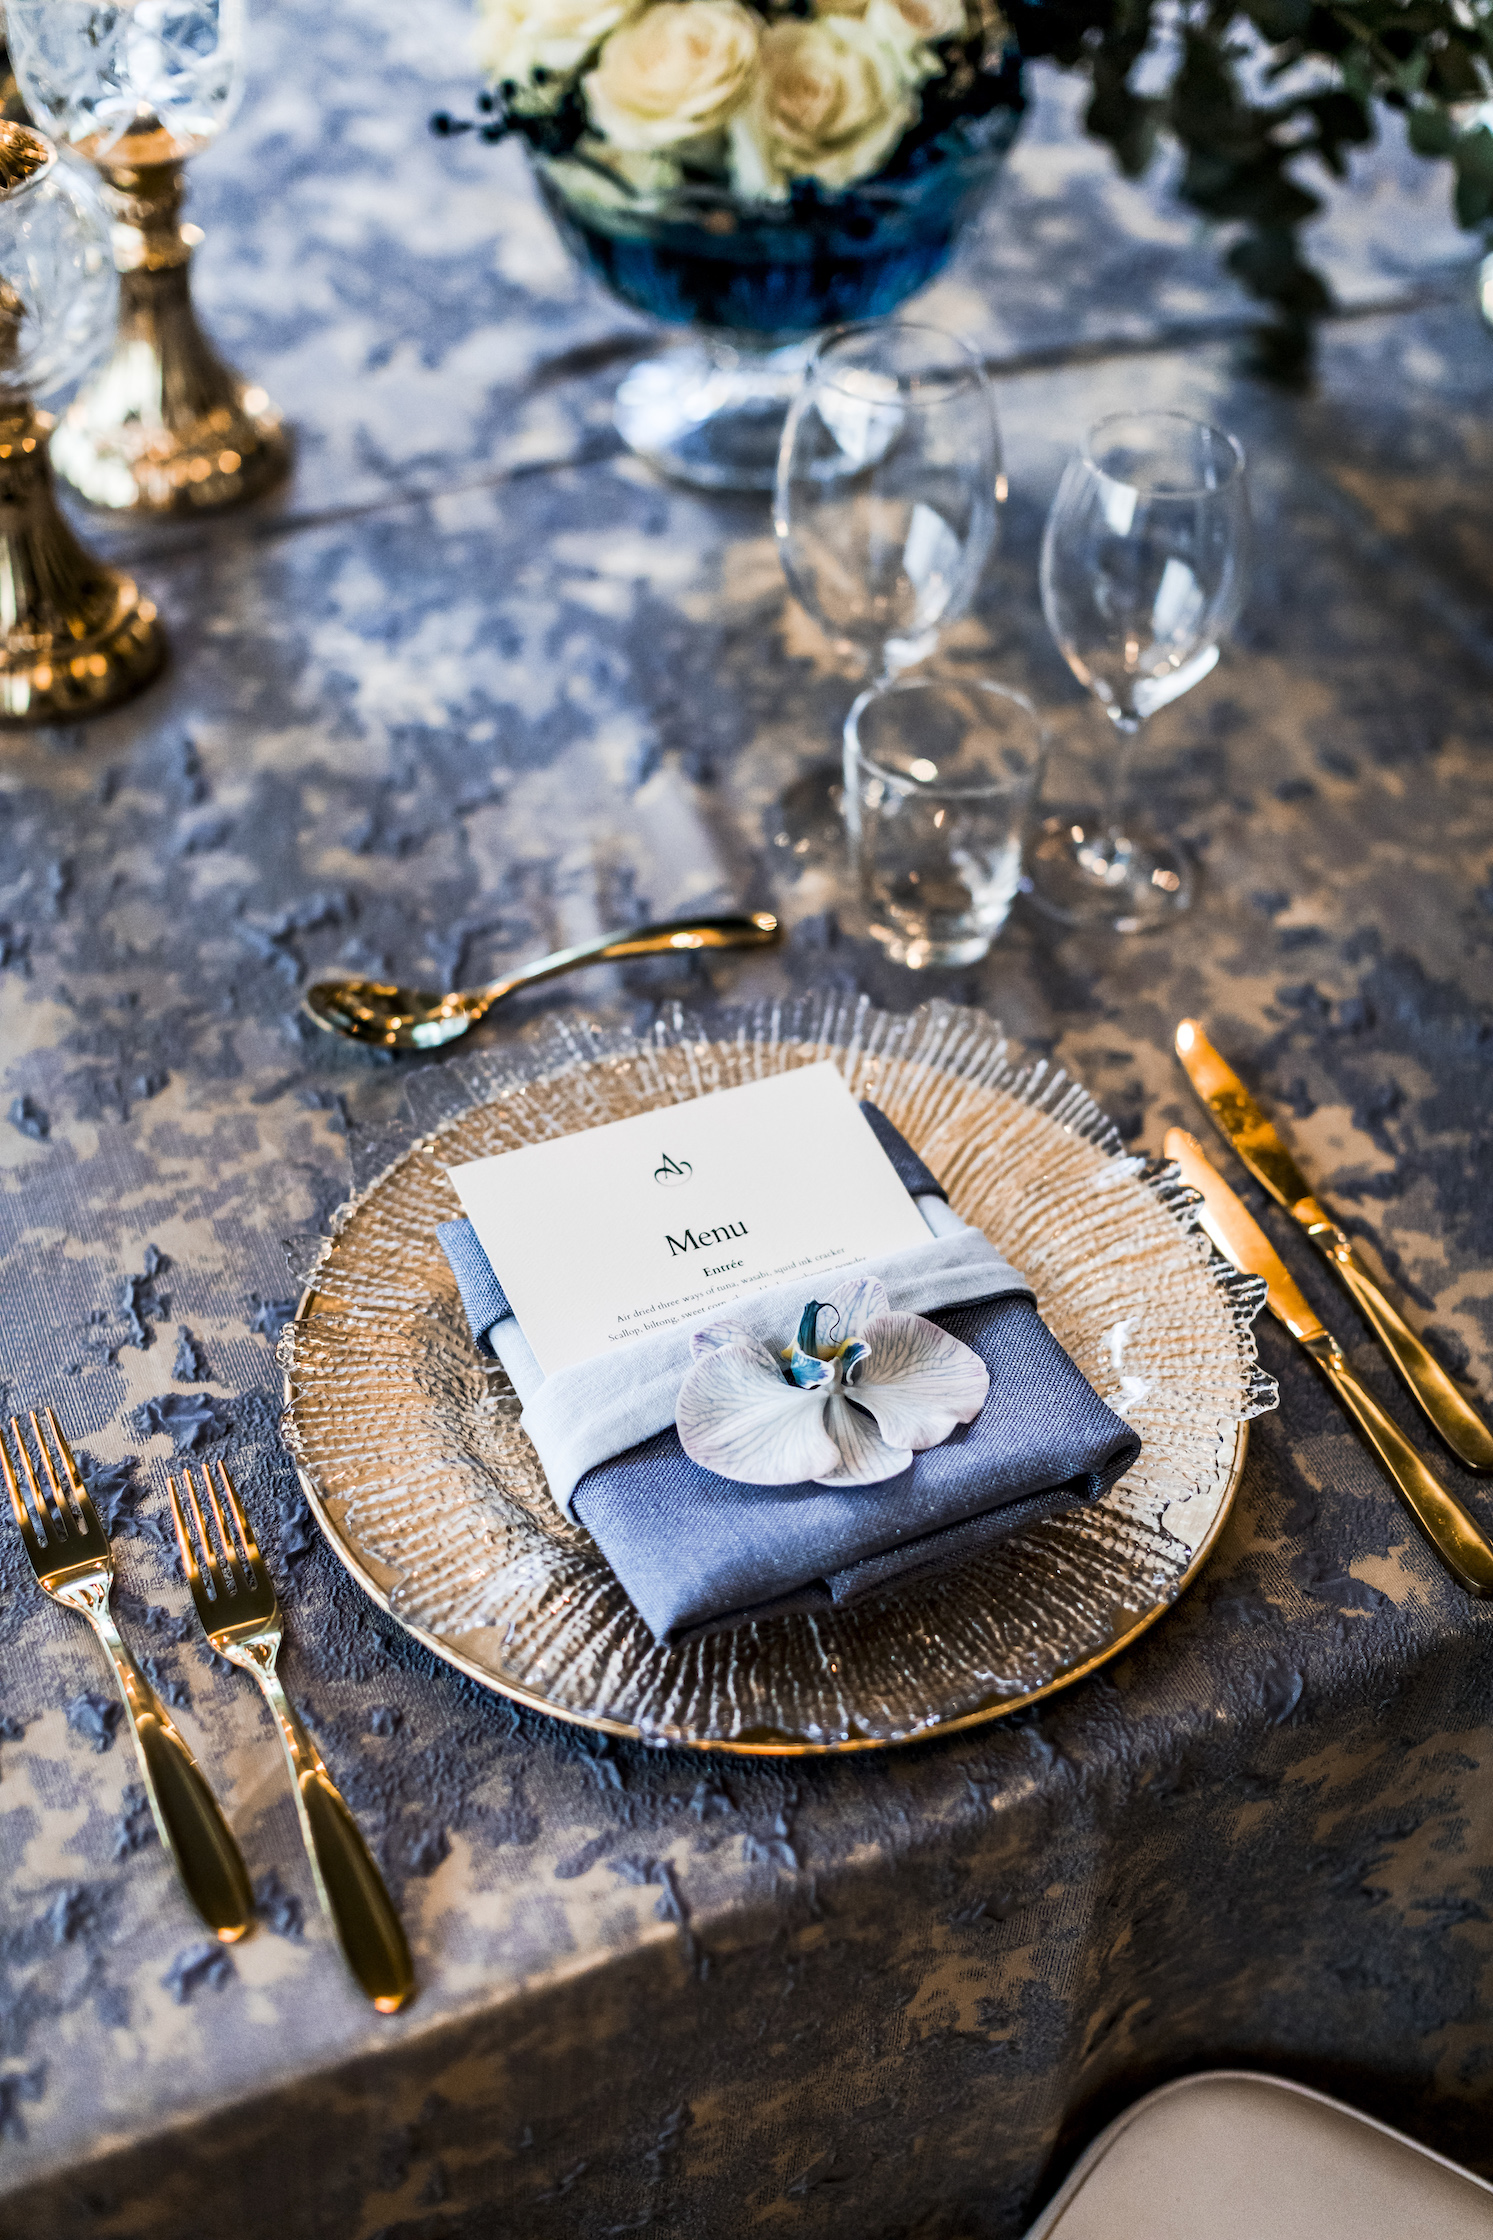 slate_plaster_luxury_linen_wedding_decor_sydney_tablecloth_blue_gold_theme_inlighten_photography_2.jpg